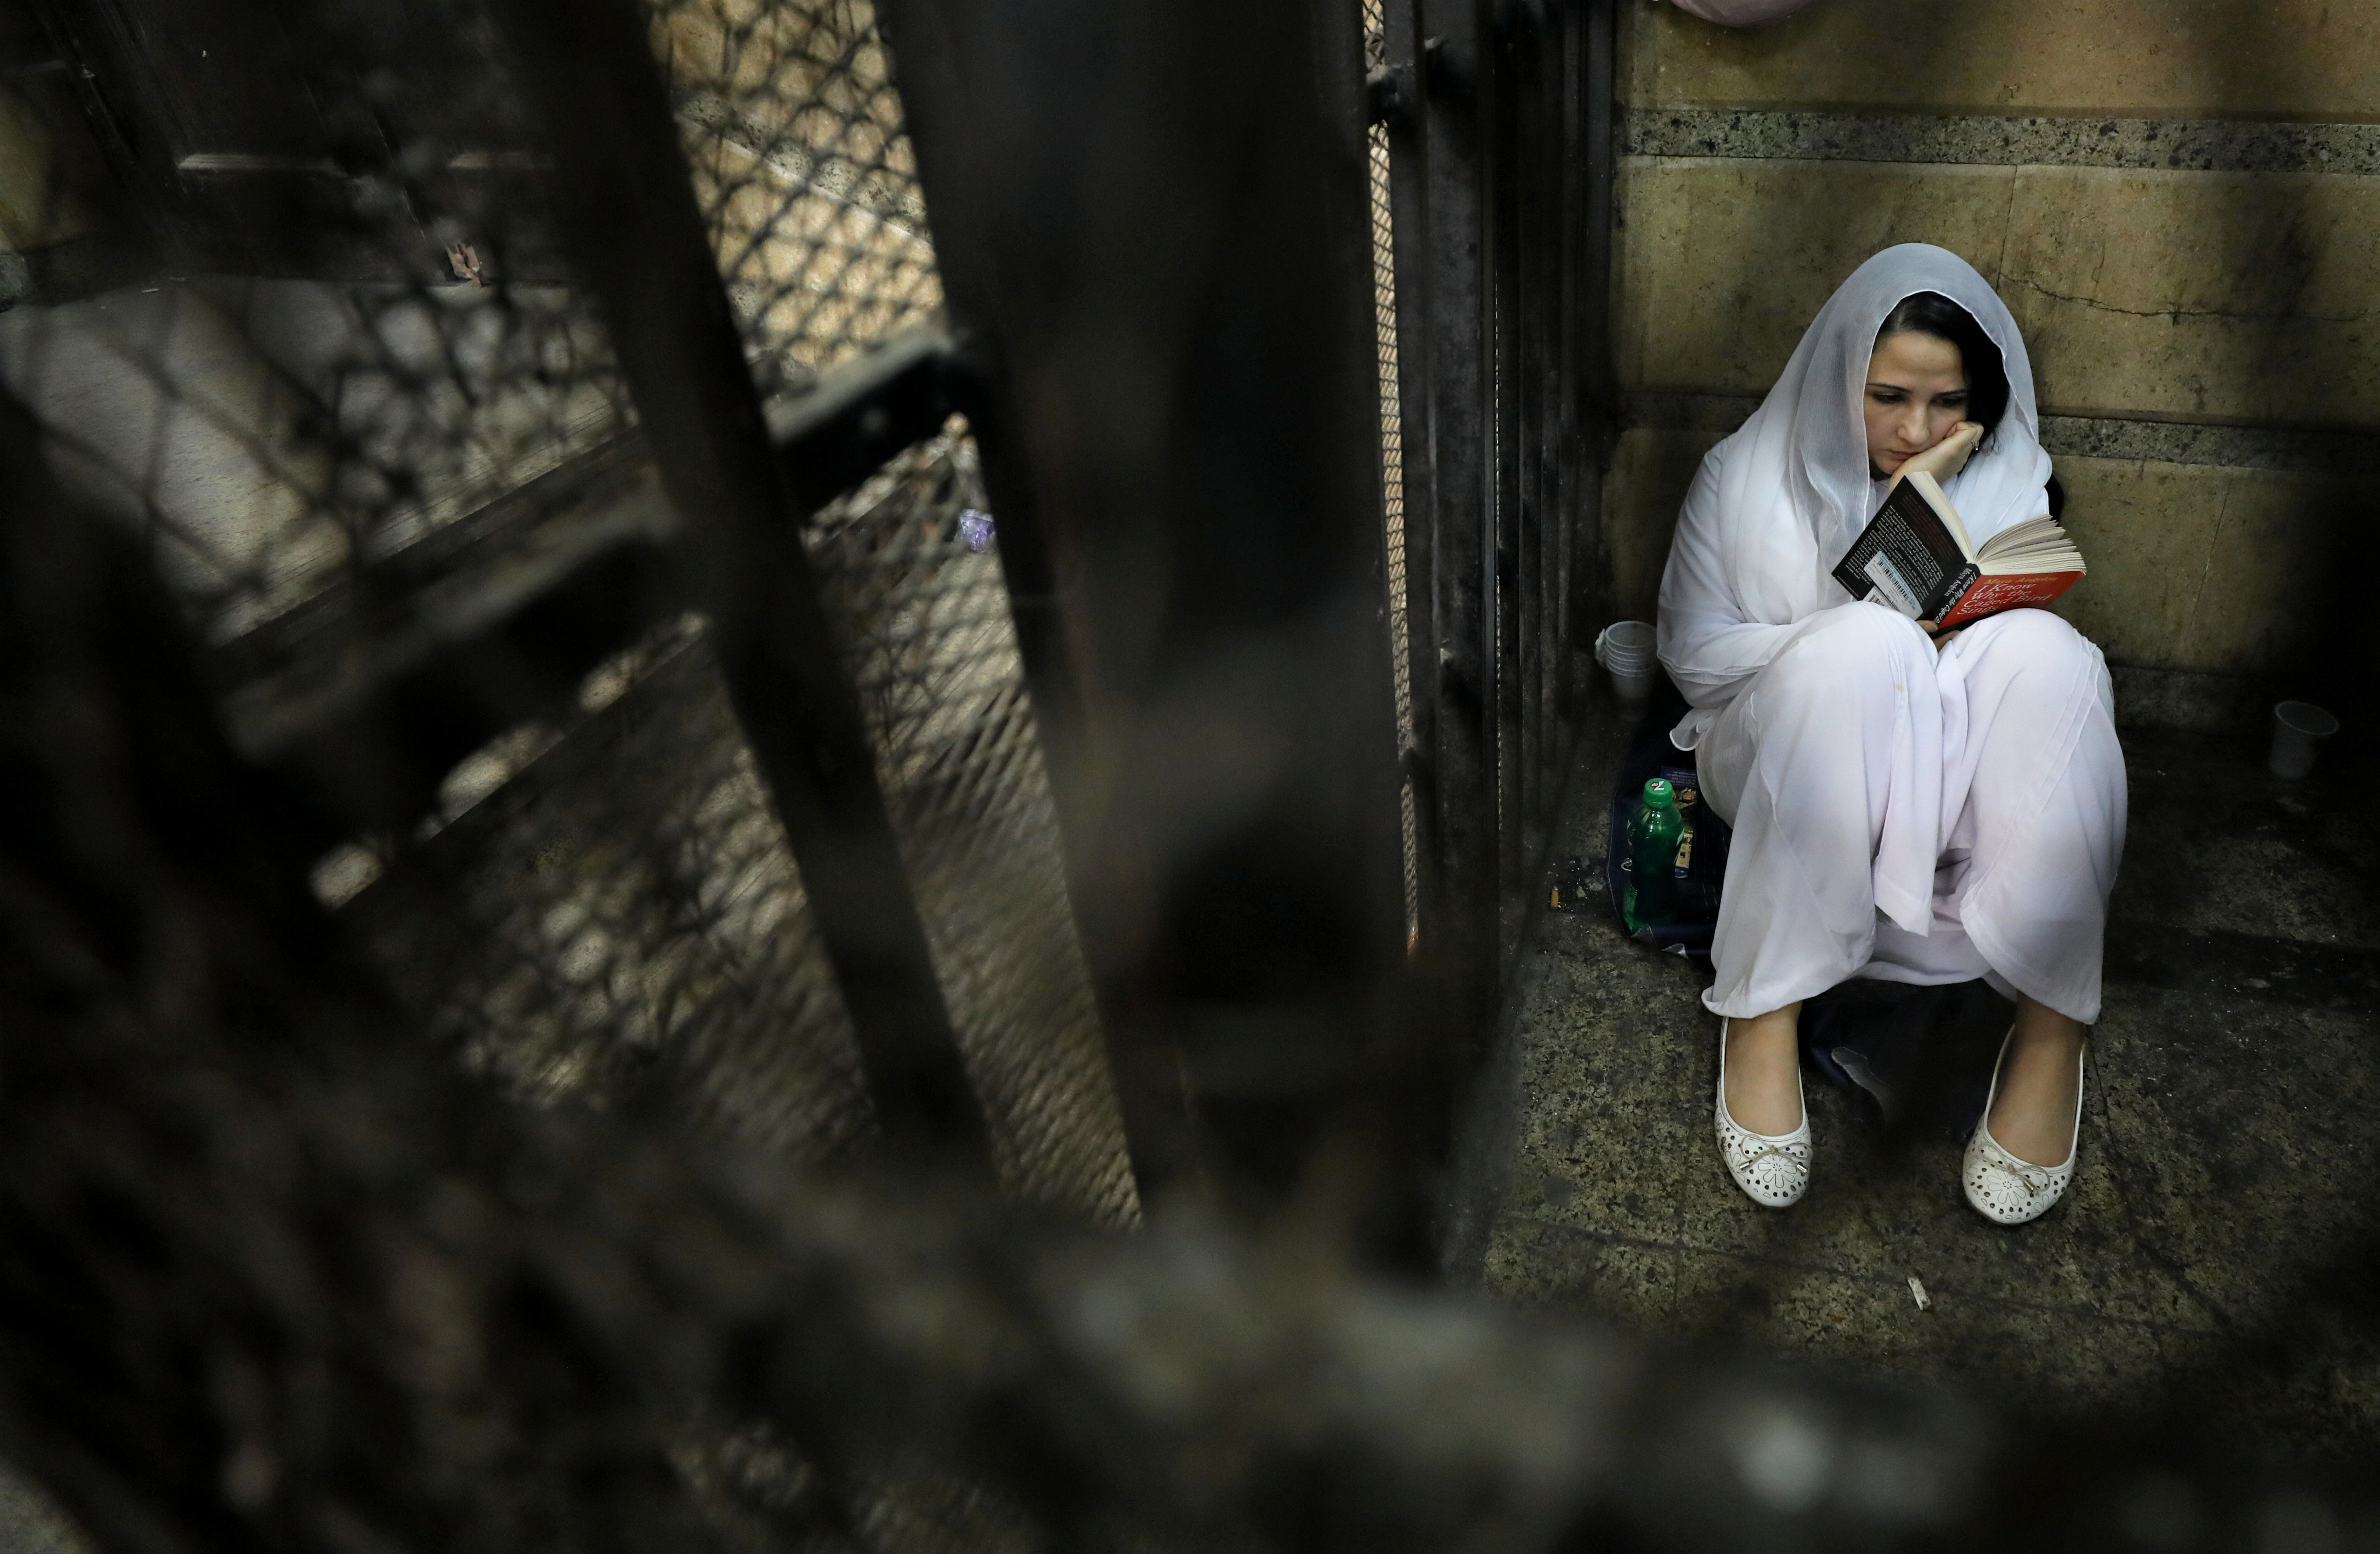 Aya Hijazi, founder of an NGO that promotes a better life for street children, has been detained for three years on huma